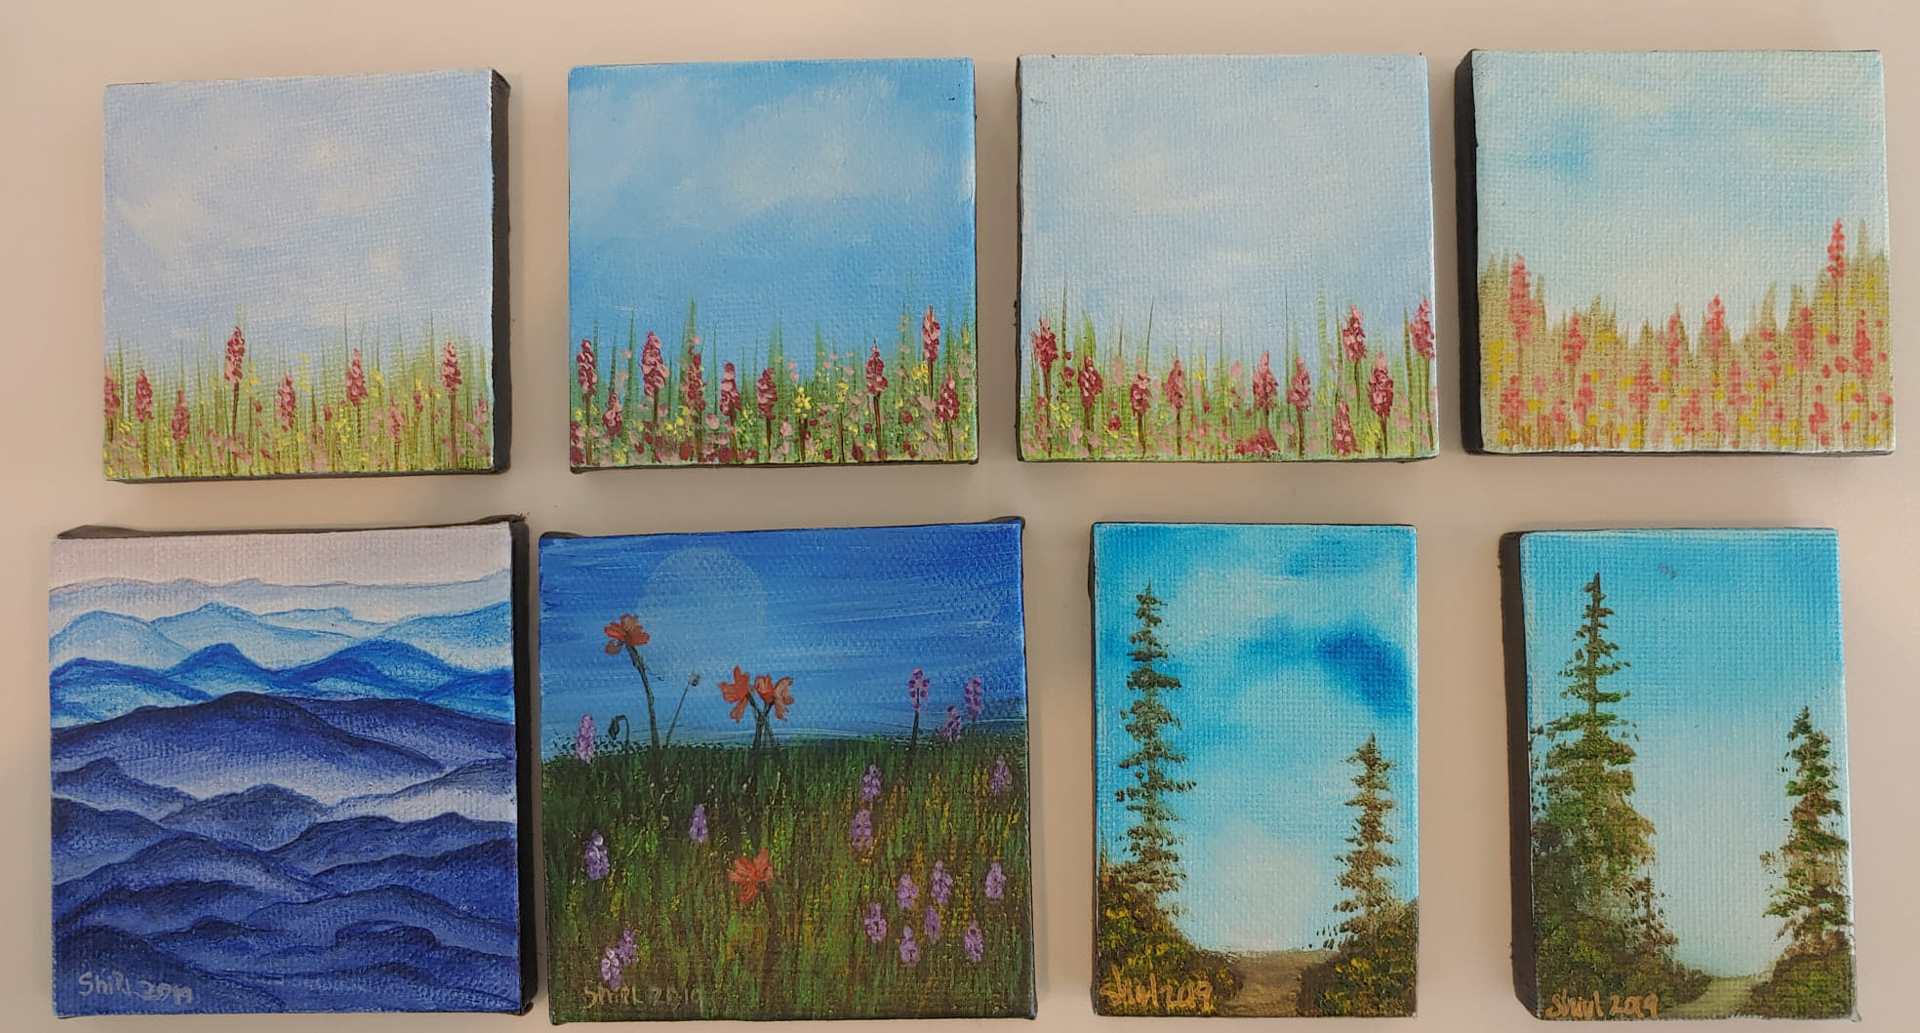 Miniatures by Shirley Hays (Yamhill, OR)